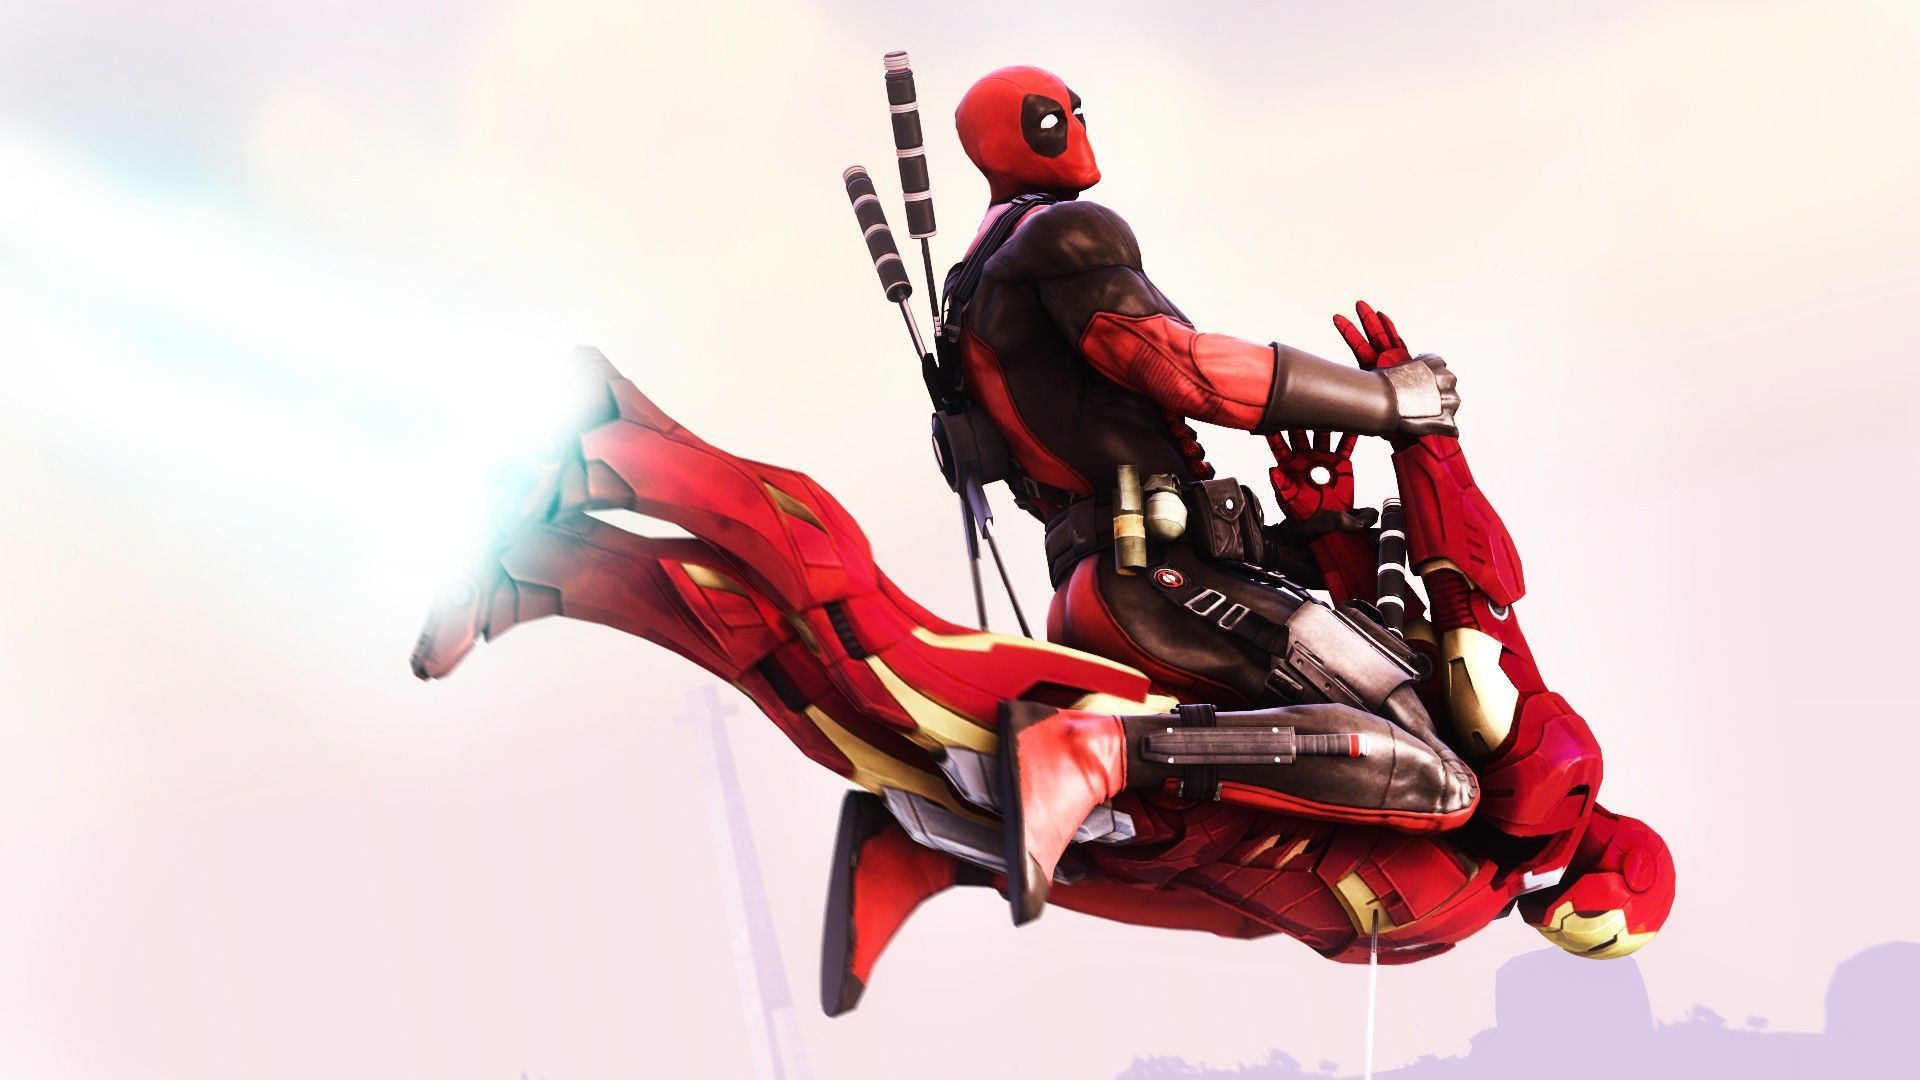 deadpool-flying-on-iron-man-funny-hd-1920x1080-cf-1920×1080-wallpaper-wp3604709